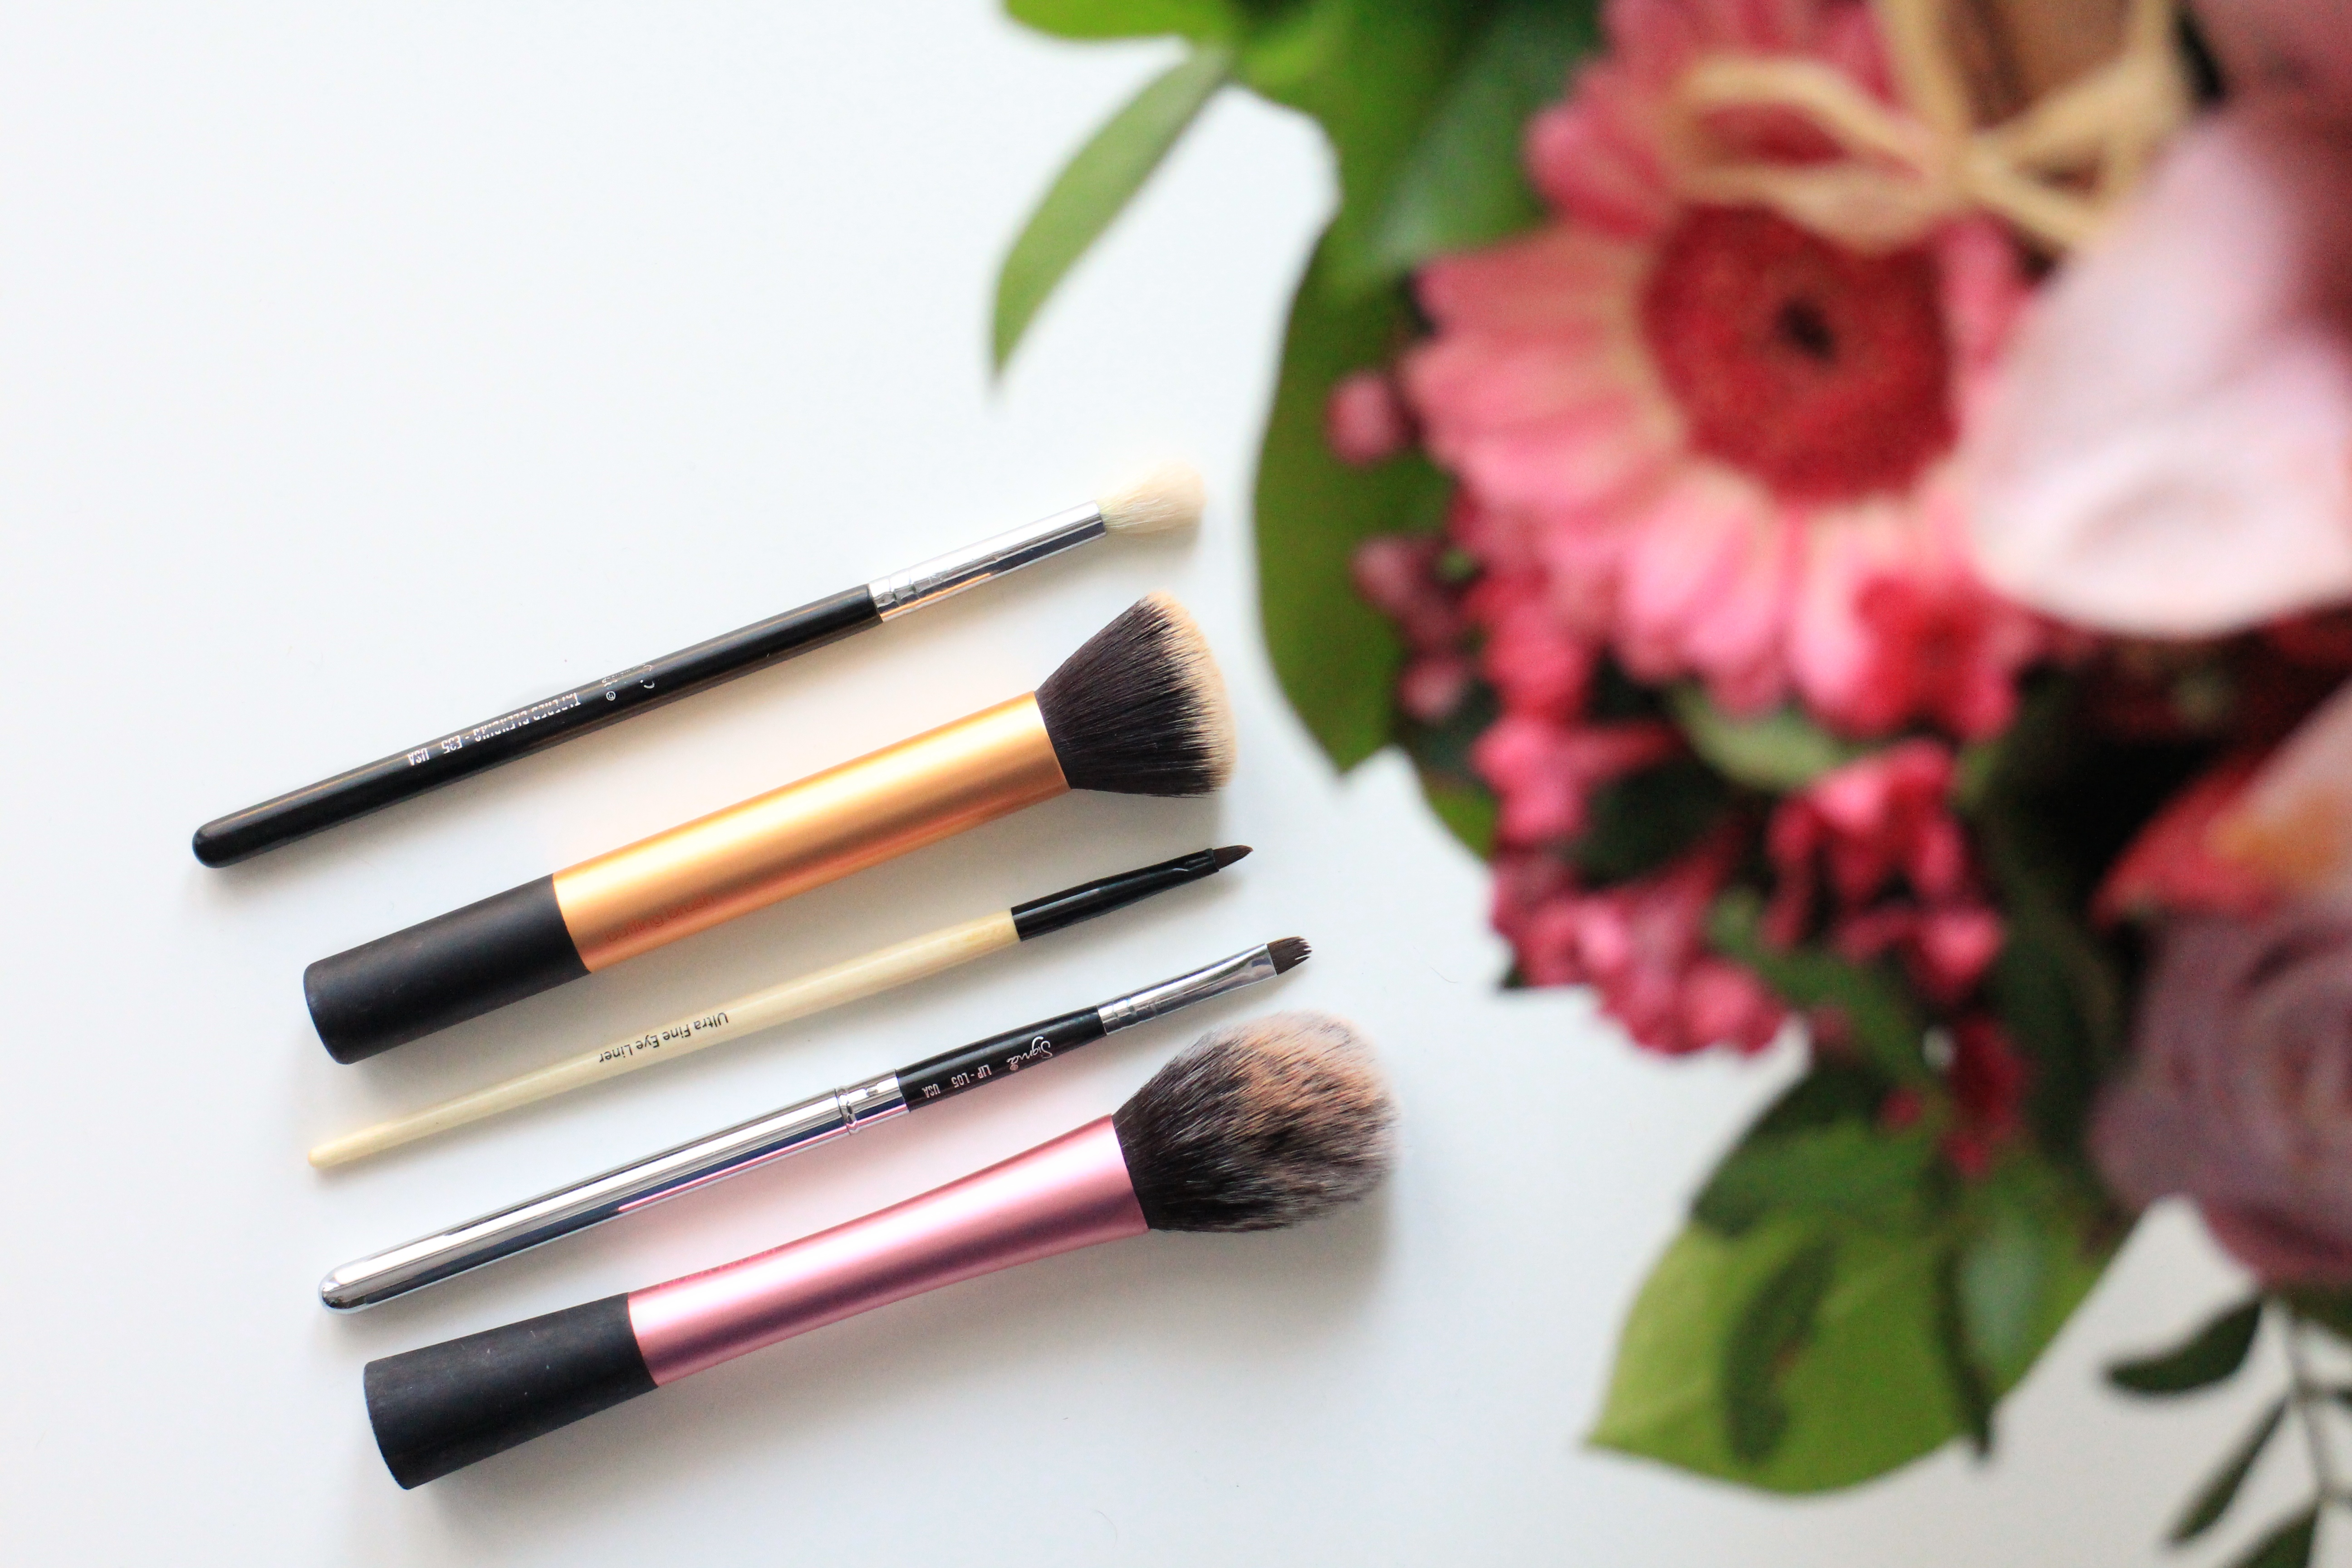 5 makeup brushes you need